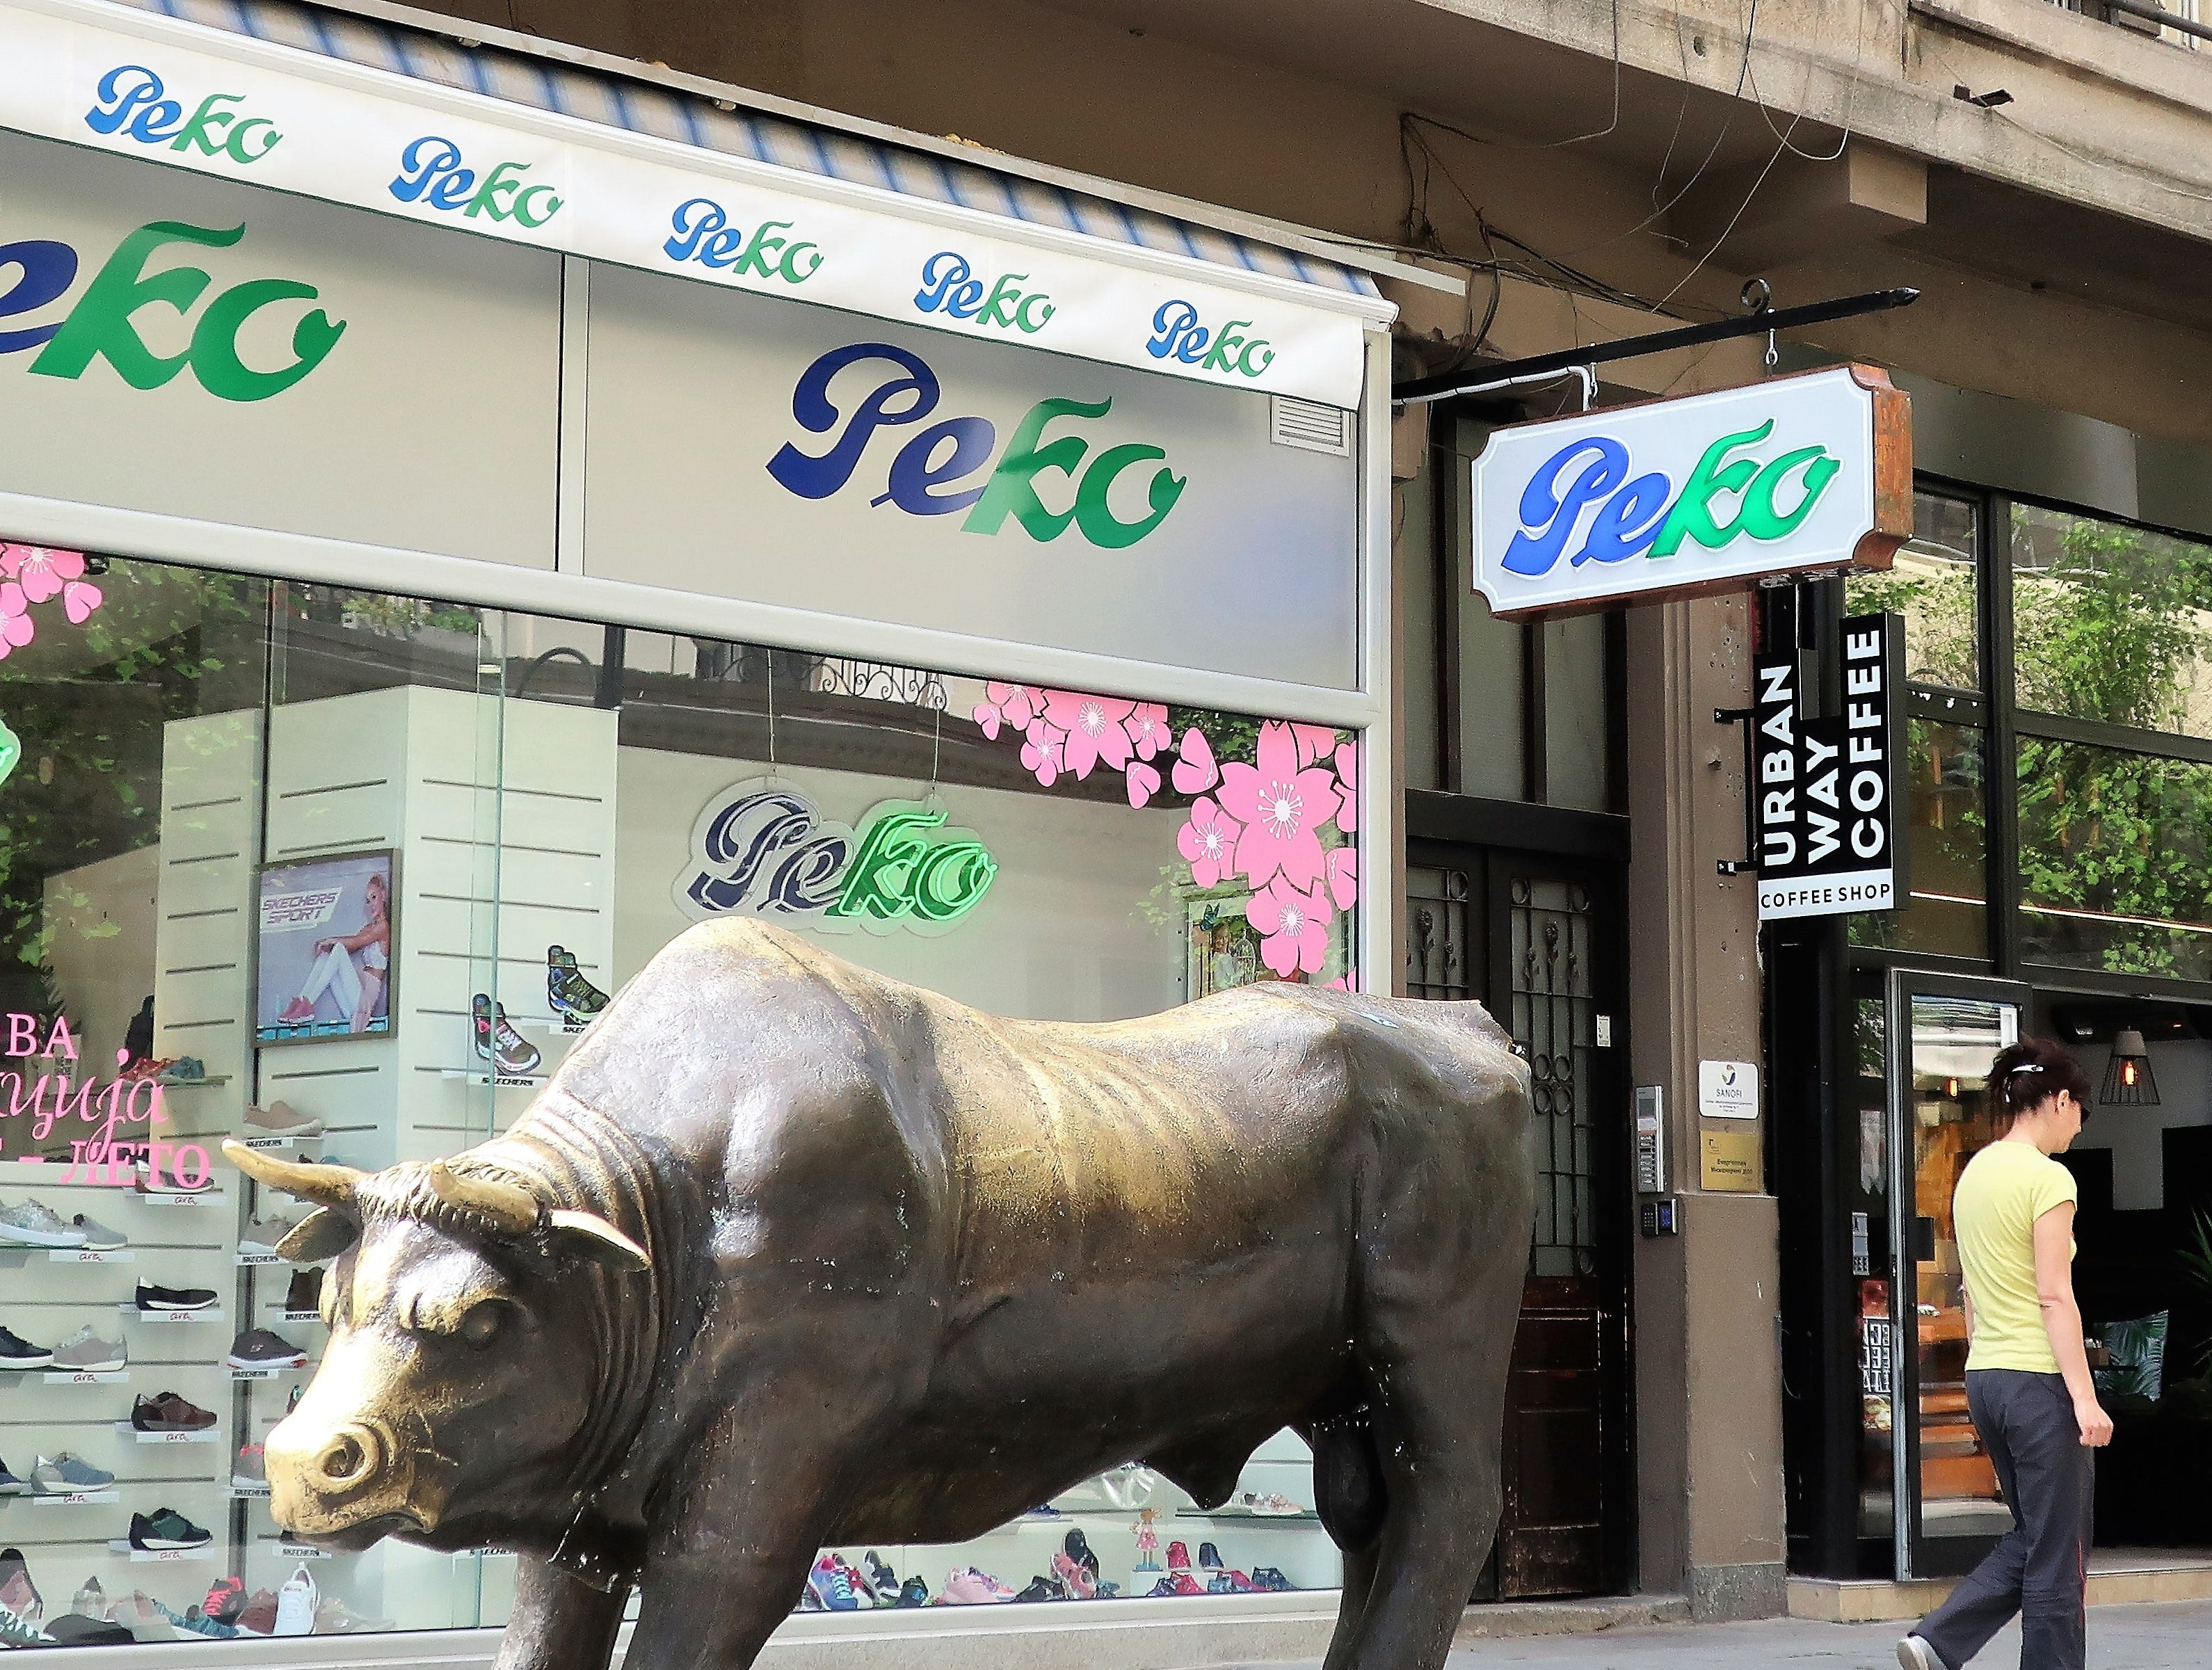 This statue of a bull in downtown Skopje resembles the famous bull on Wall Street in New York City.